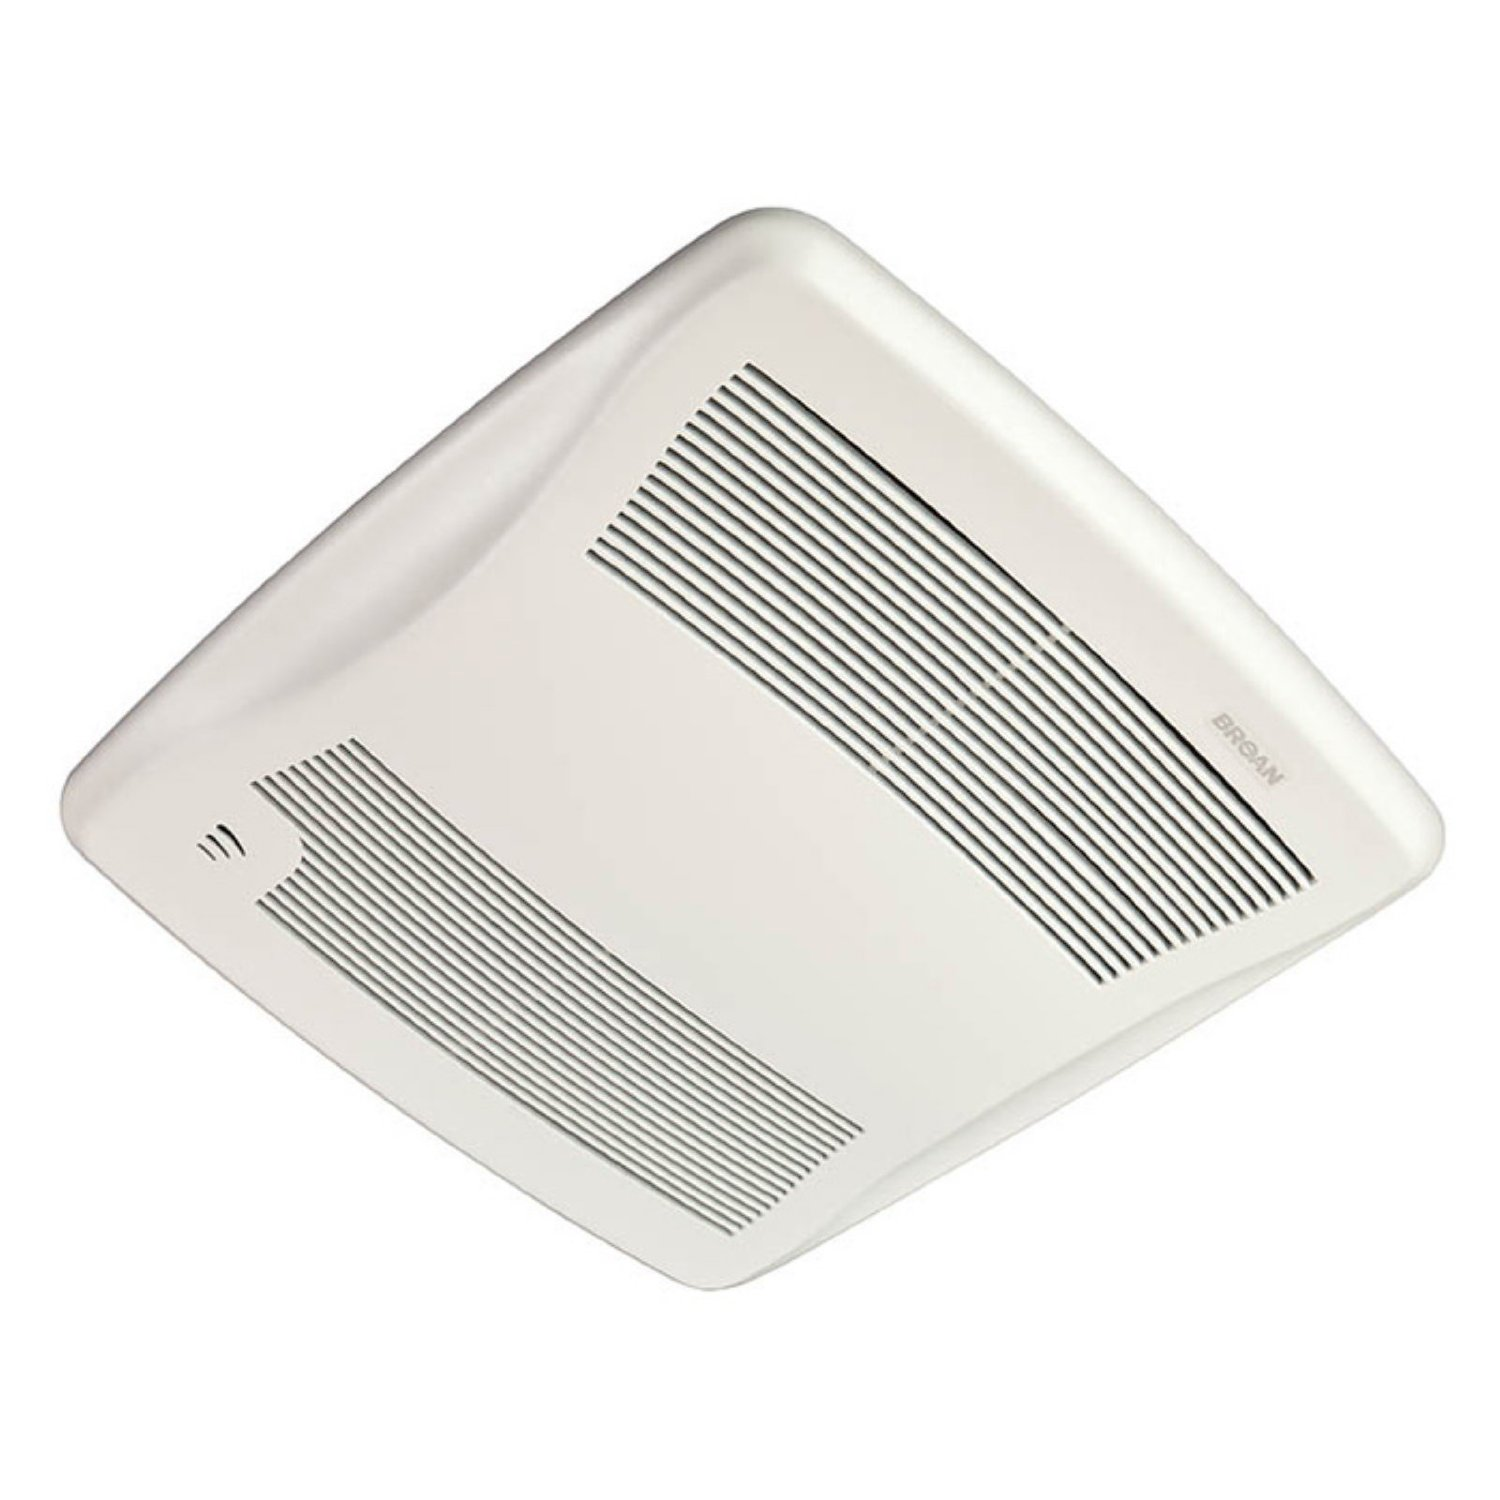 Broan Bathroom Fan | Nutone Bathroom Heater | Broan Bathroom Light Fan Combo